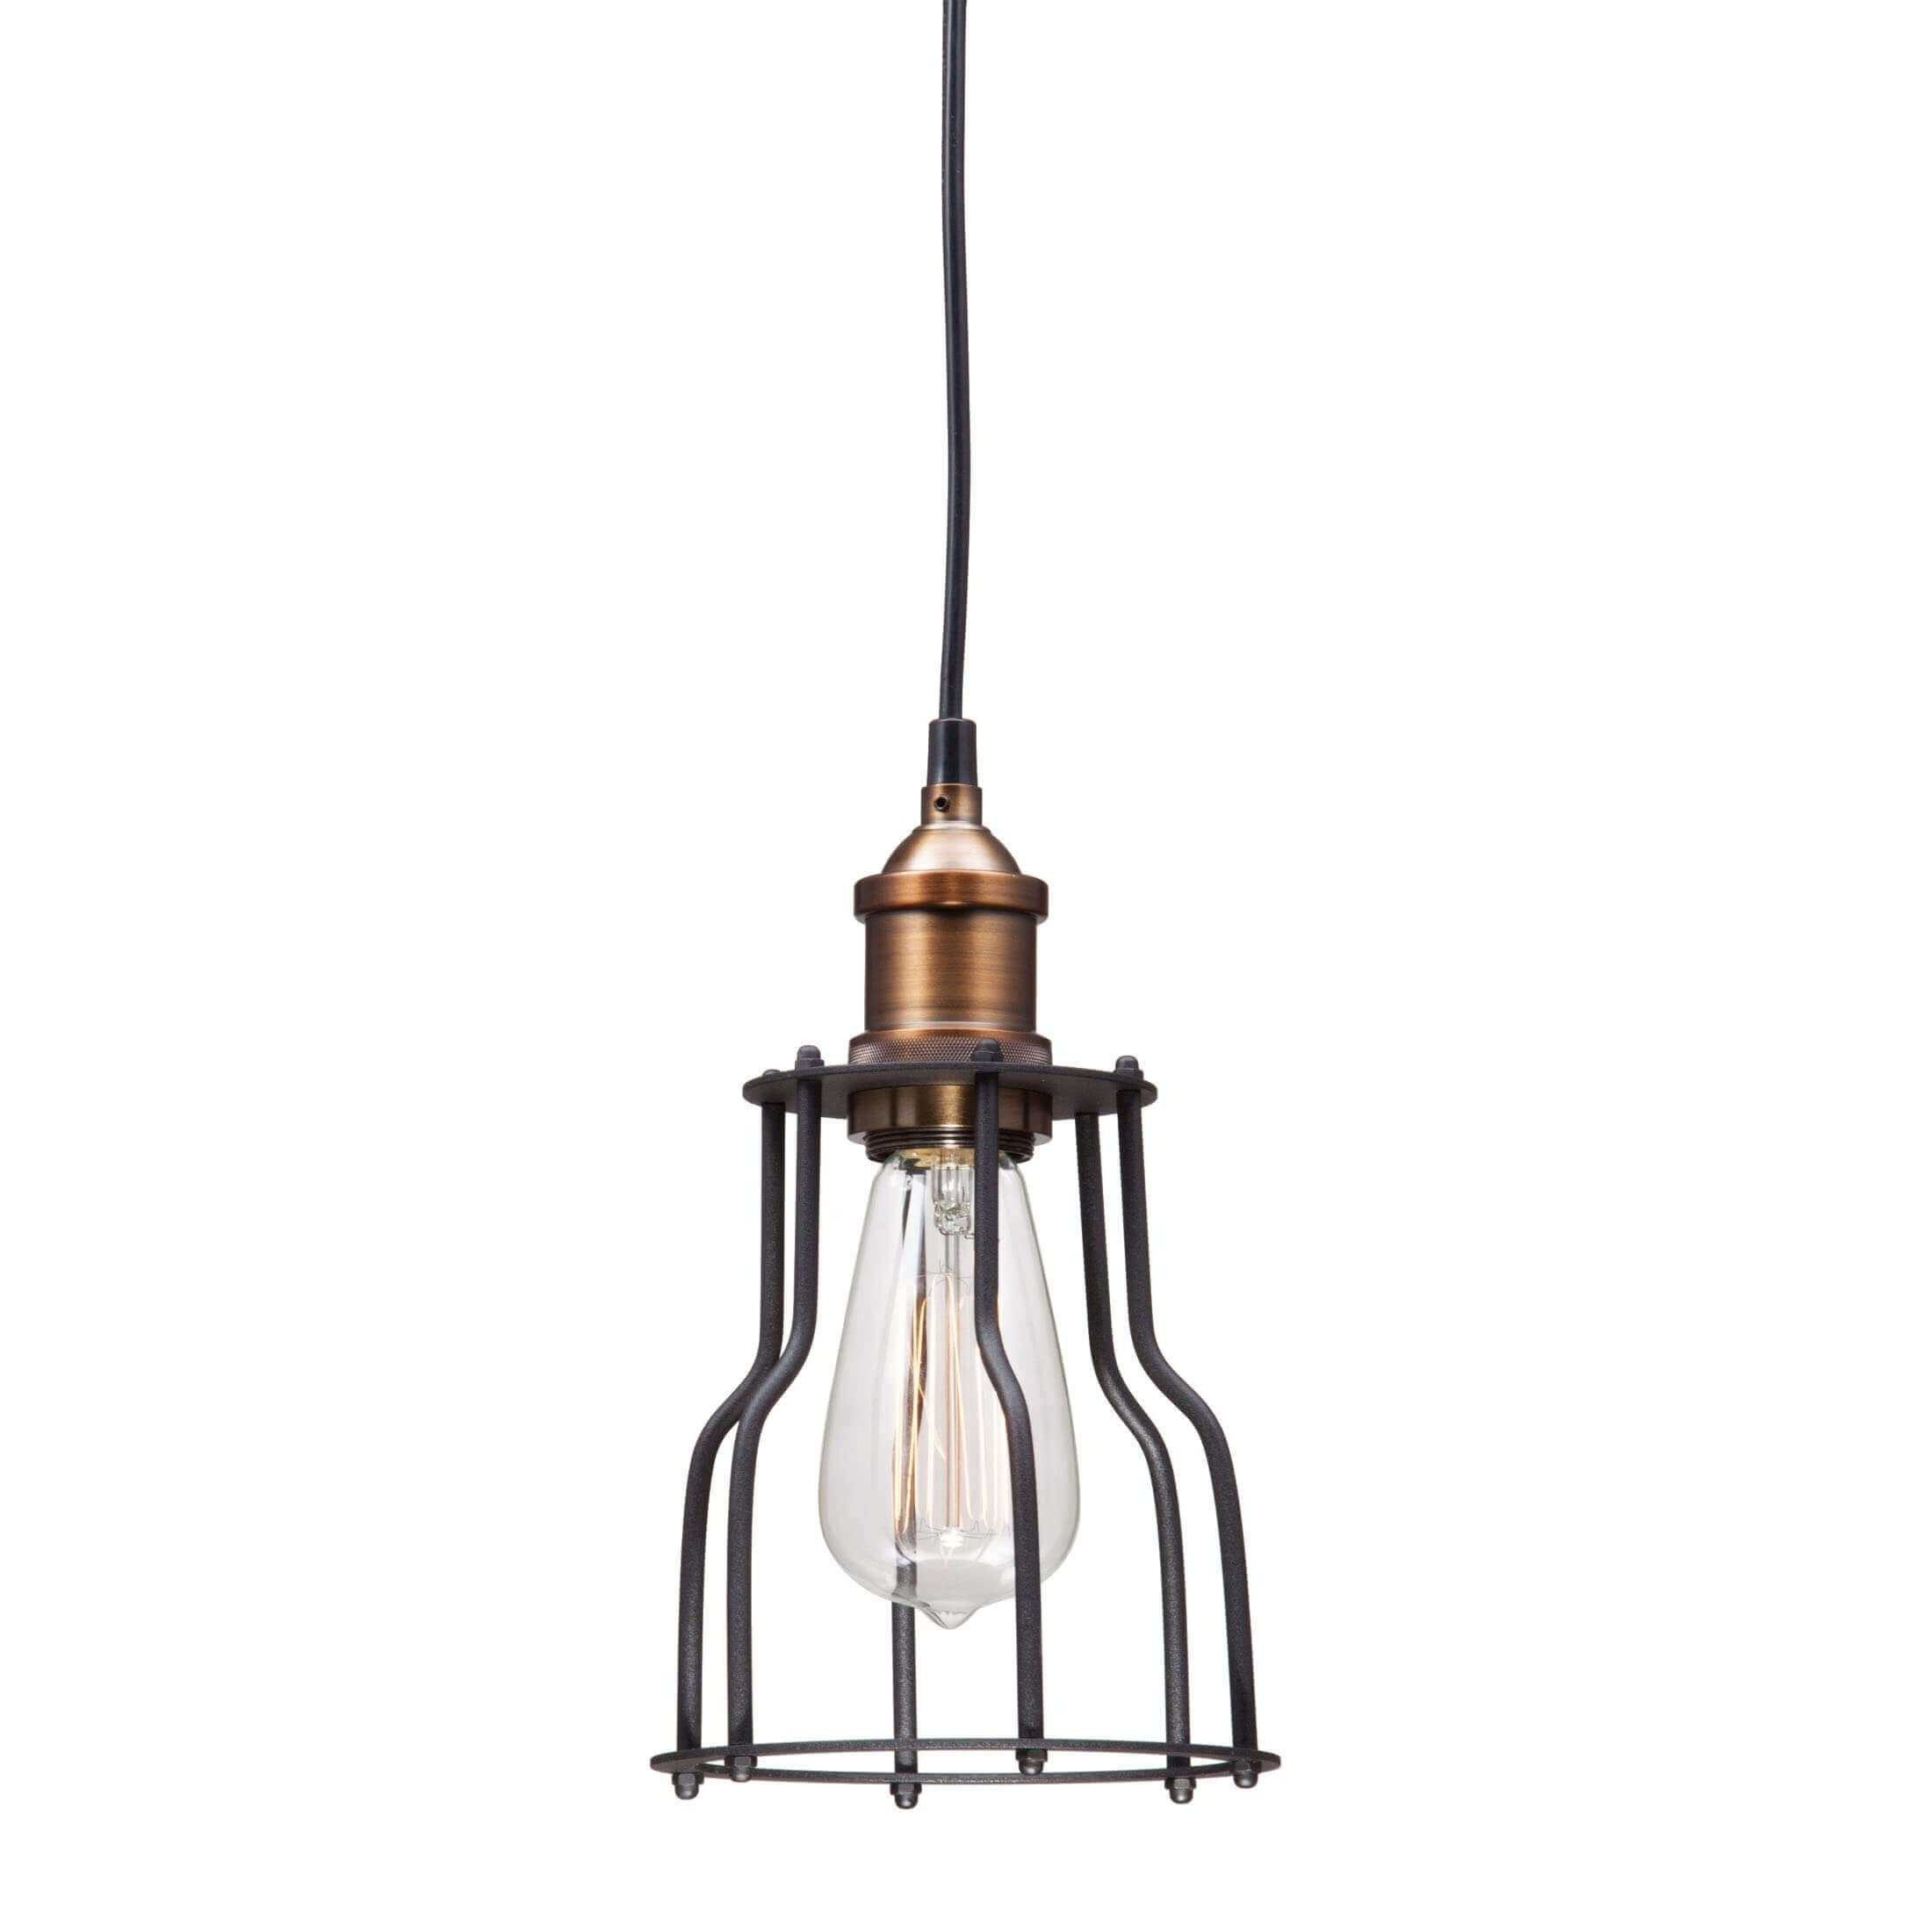 Contemporary ;ighting vintage industrial lighting